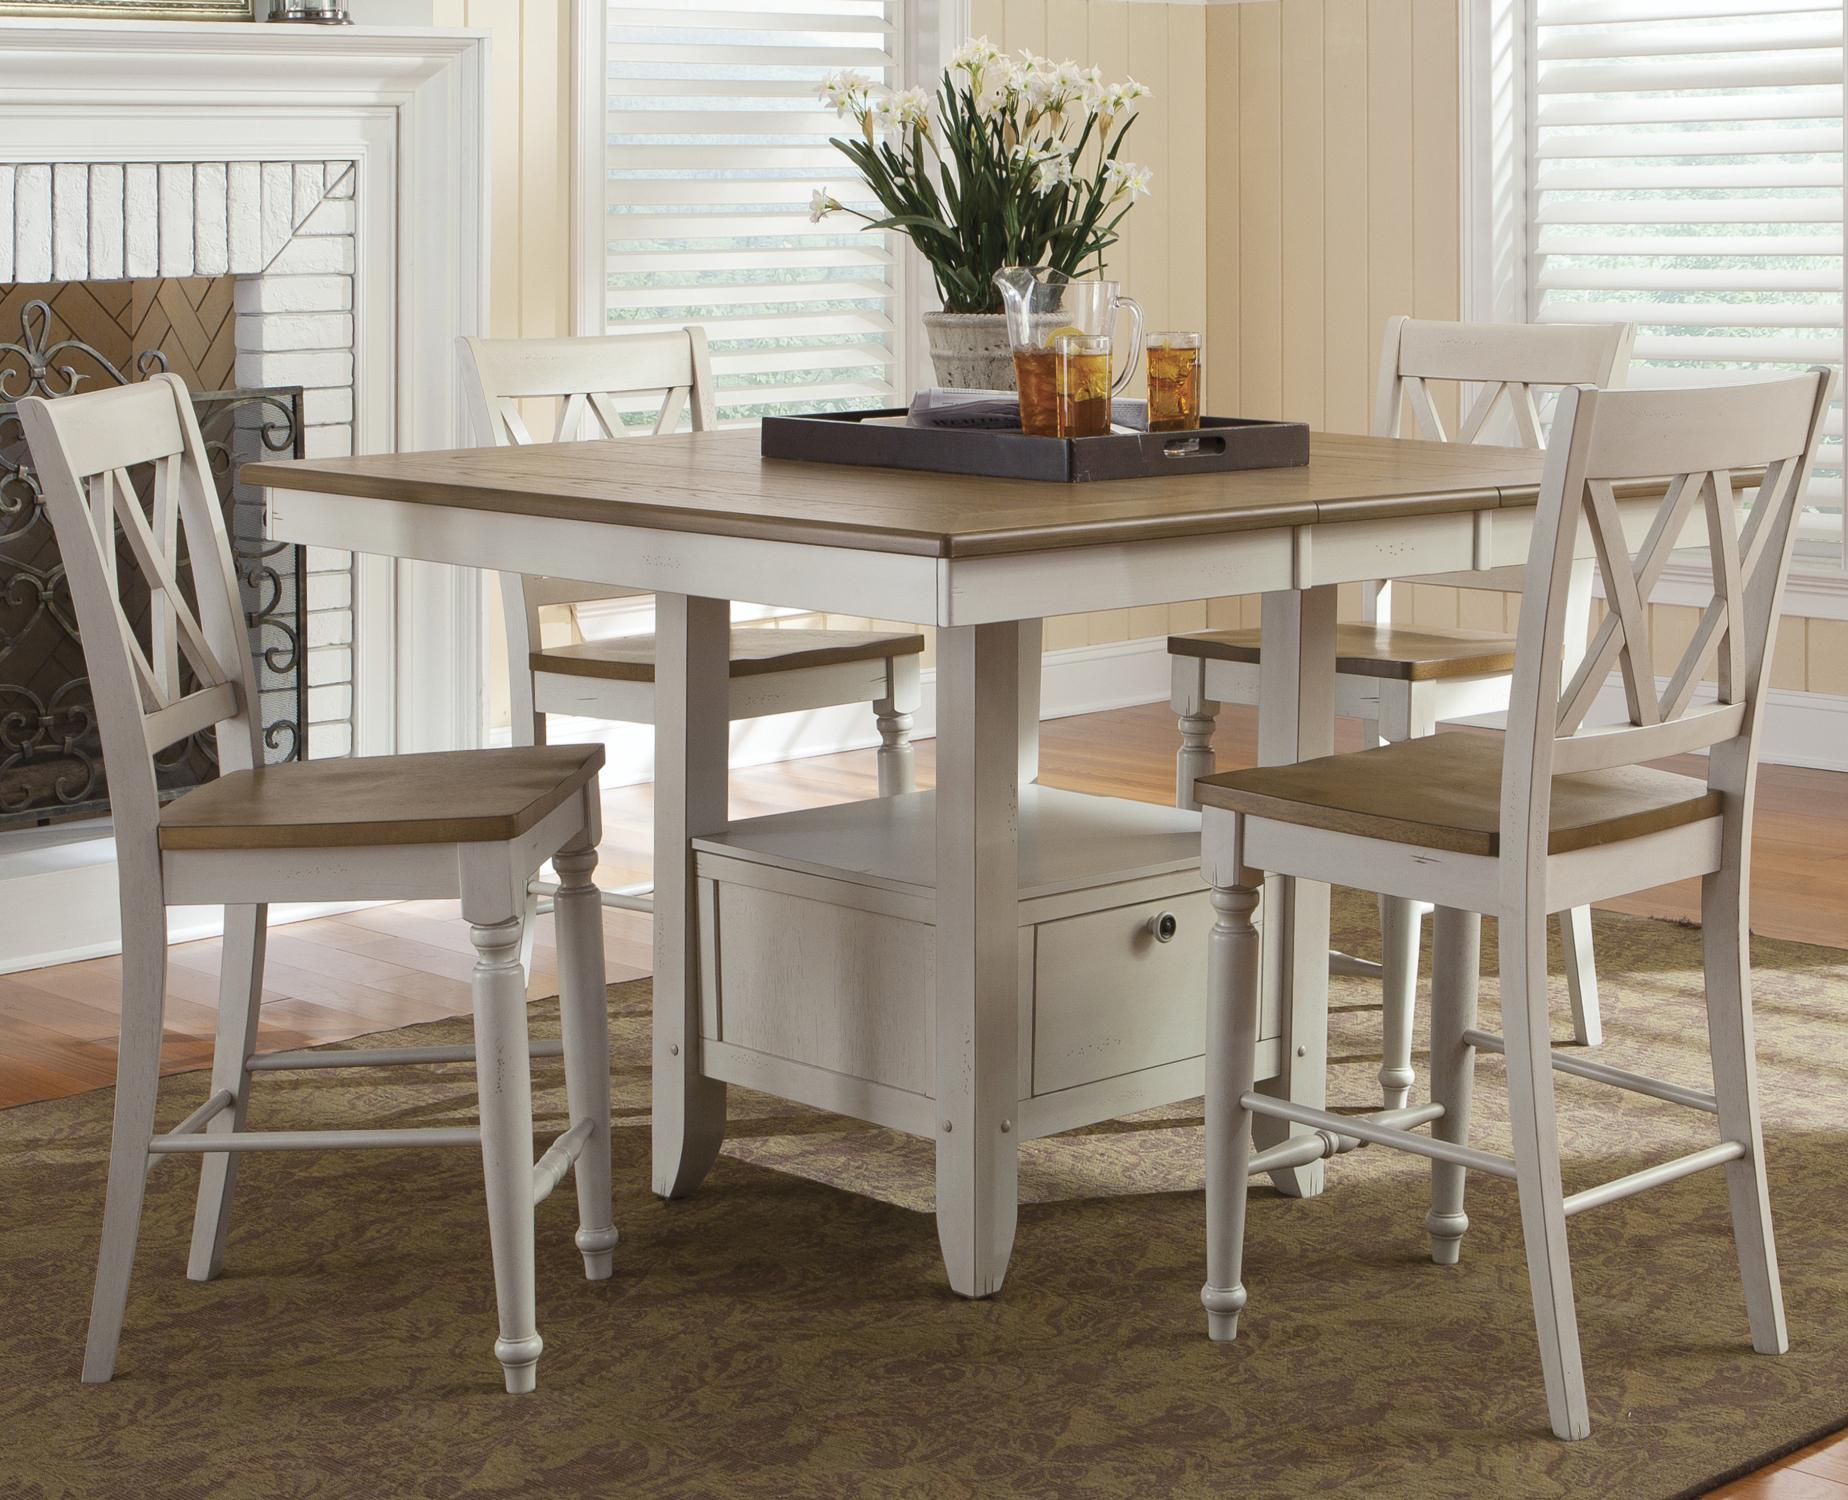 al s chairs and tables bubble chair stand uk liberty furniture fresco iii five piece gathering table